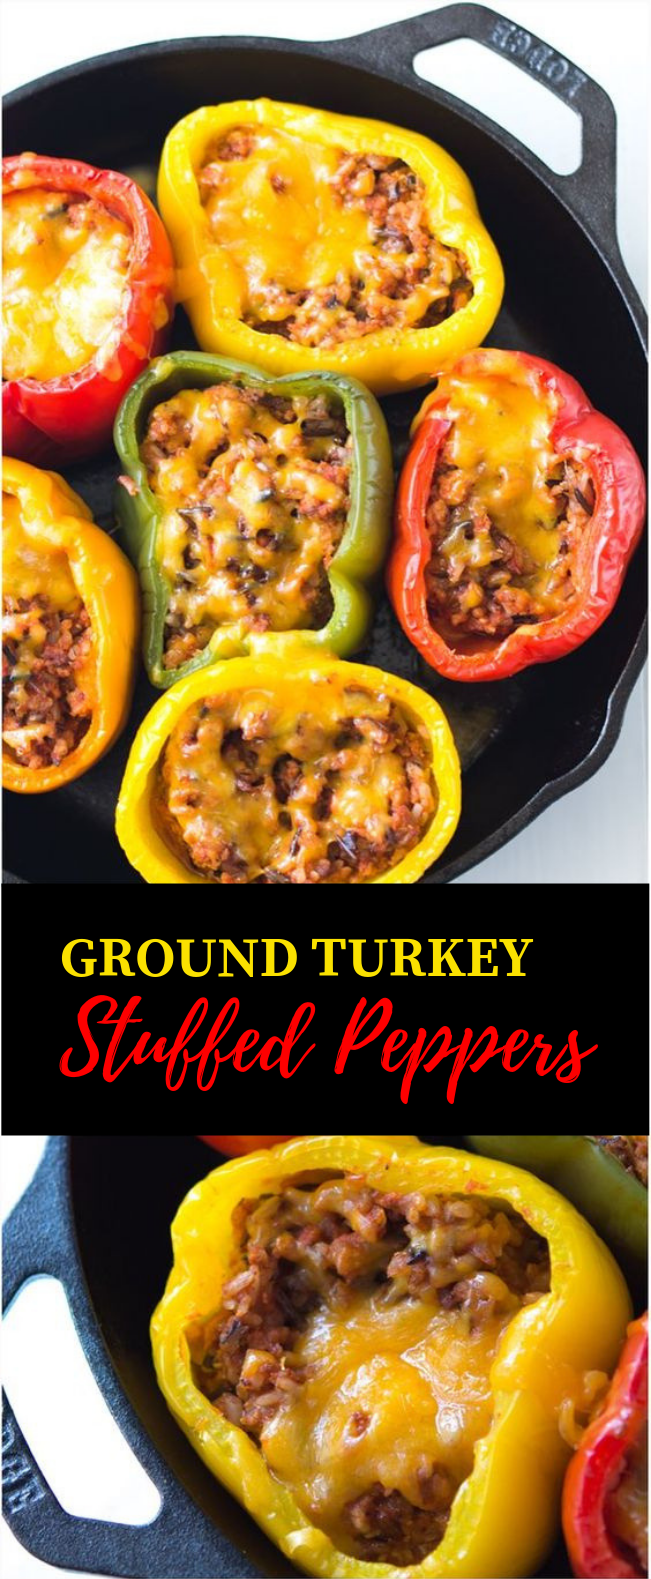 GROUND TURKEY STUFFED PEPPERS #Dinner #Recipe